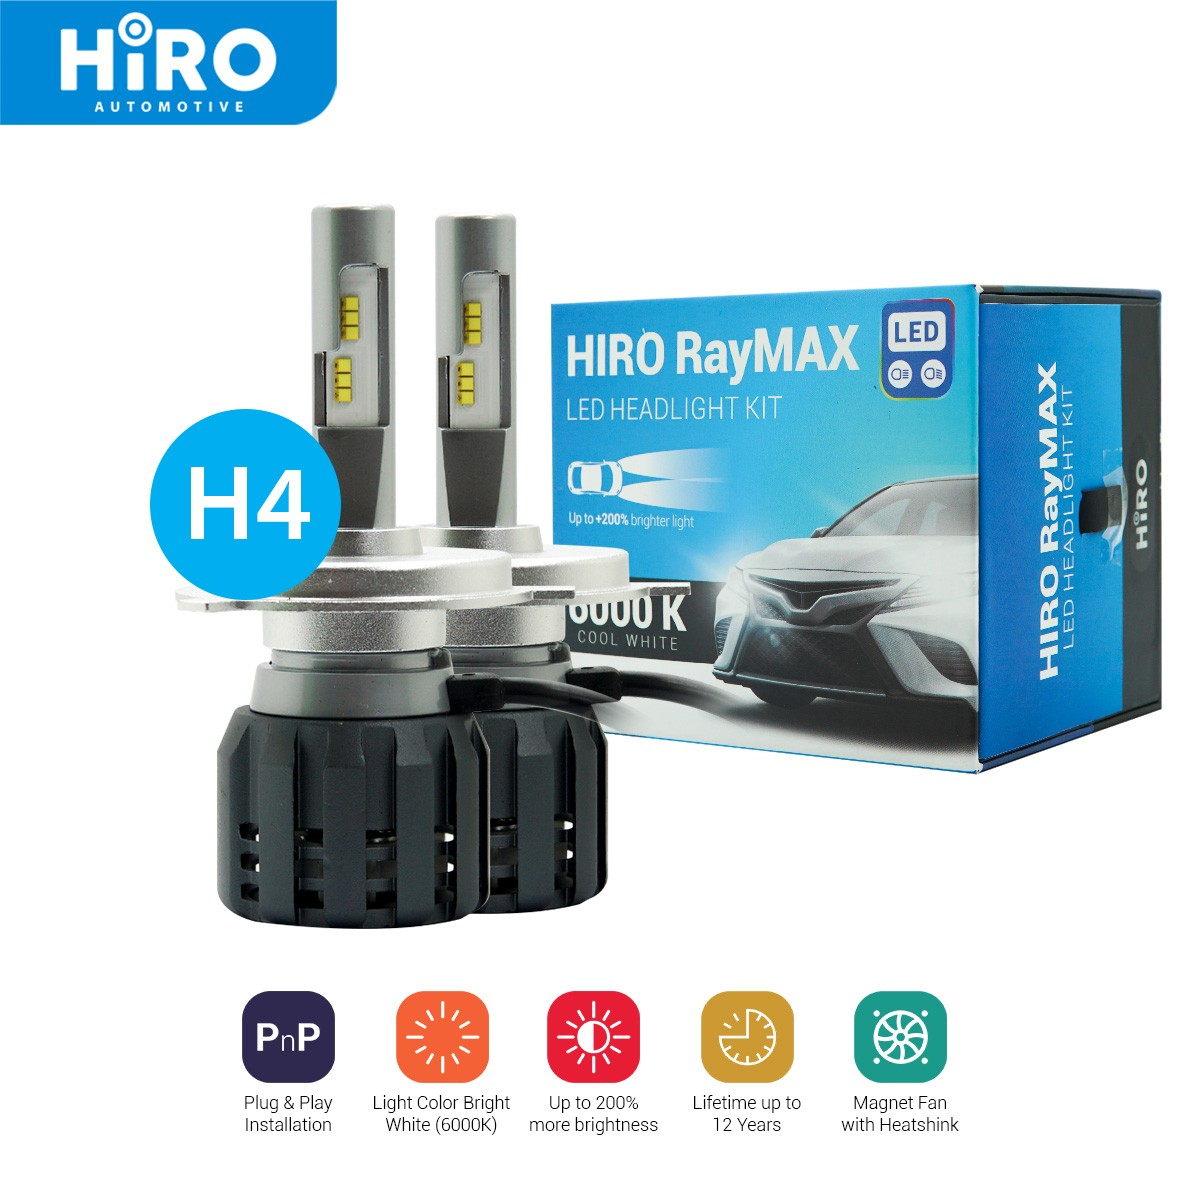 HIRO LED RAYMAX - LAMPU LED H4 6000K